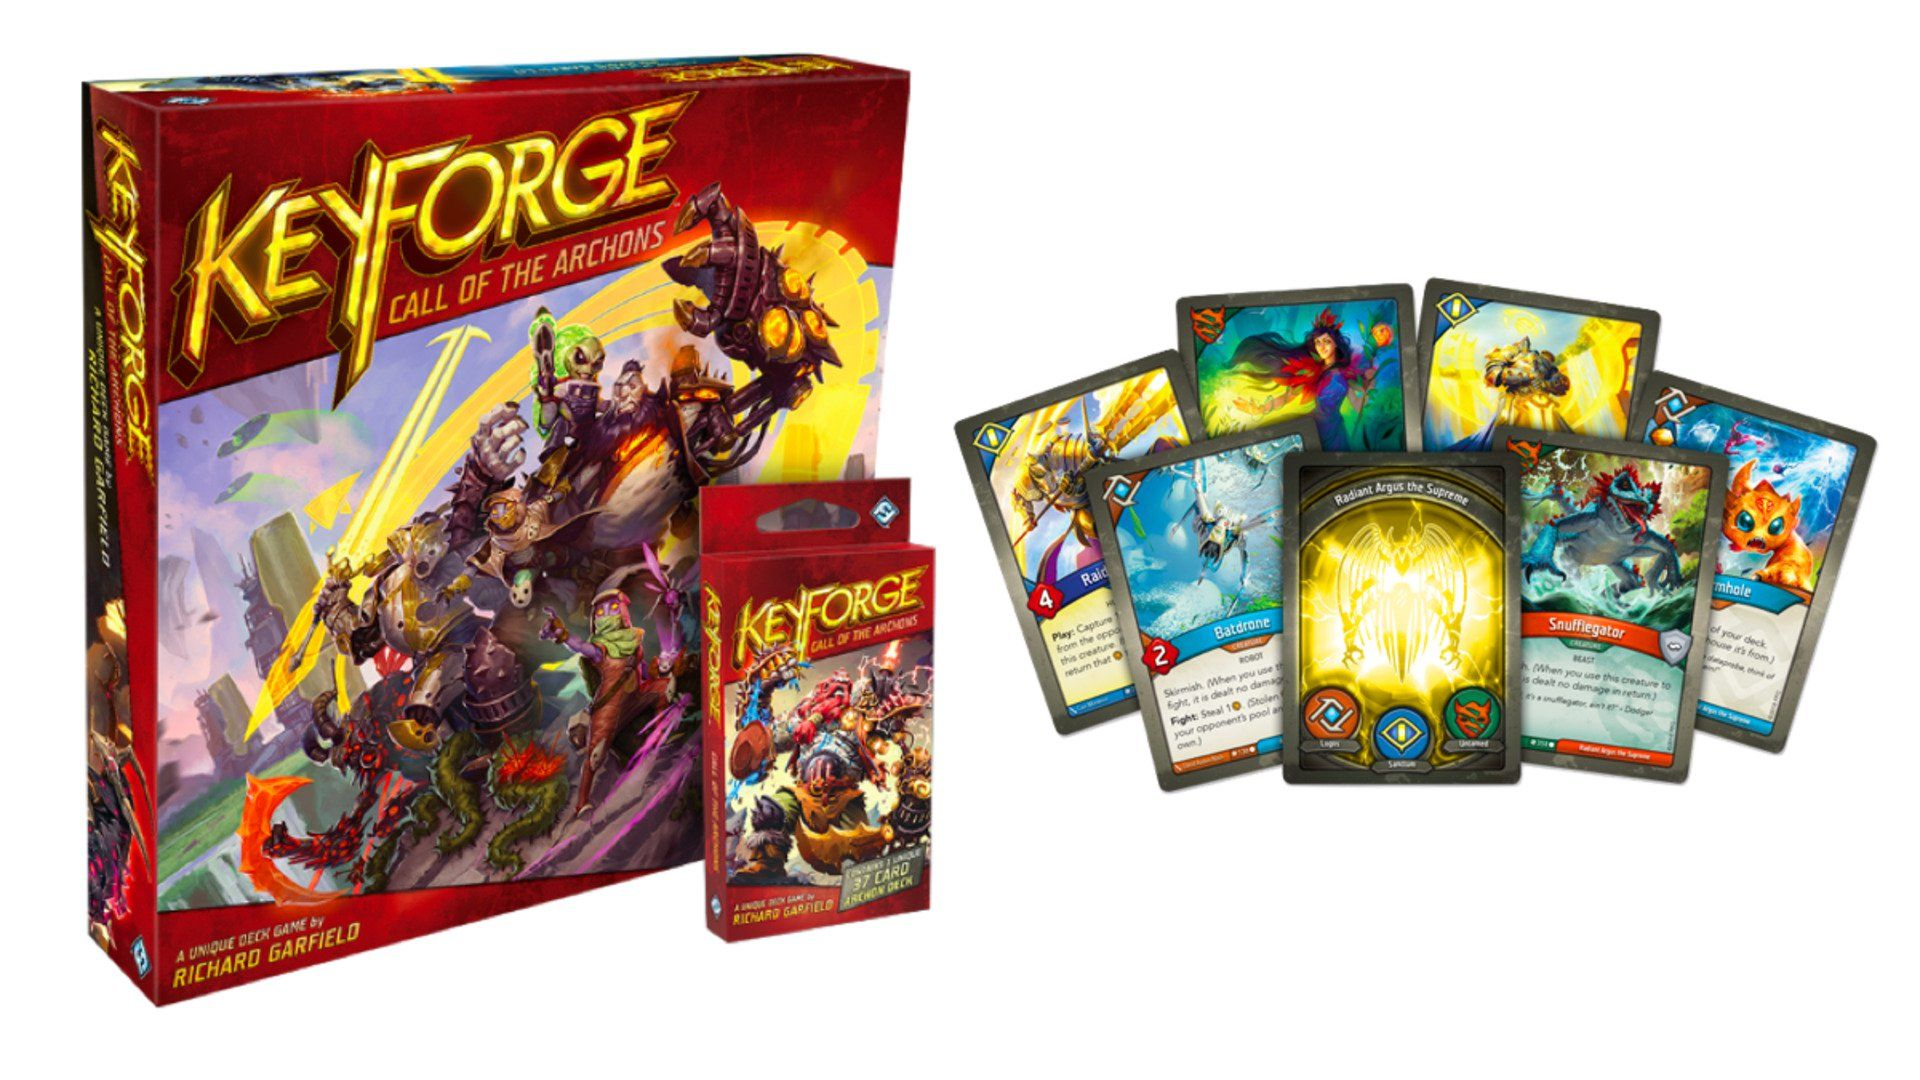 Keyforge Call Of The Archons Sold Out By Fantasy Flight Games Unique Cards Card Games Games